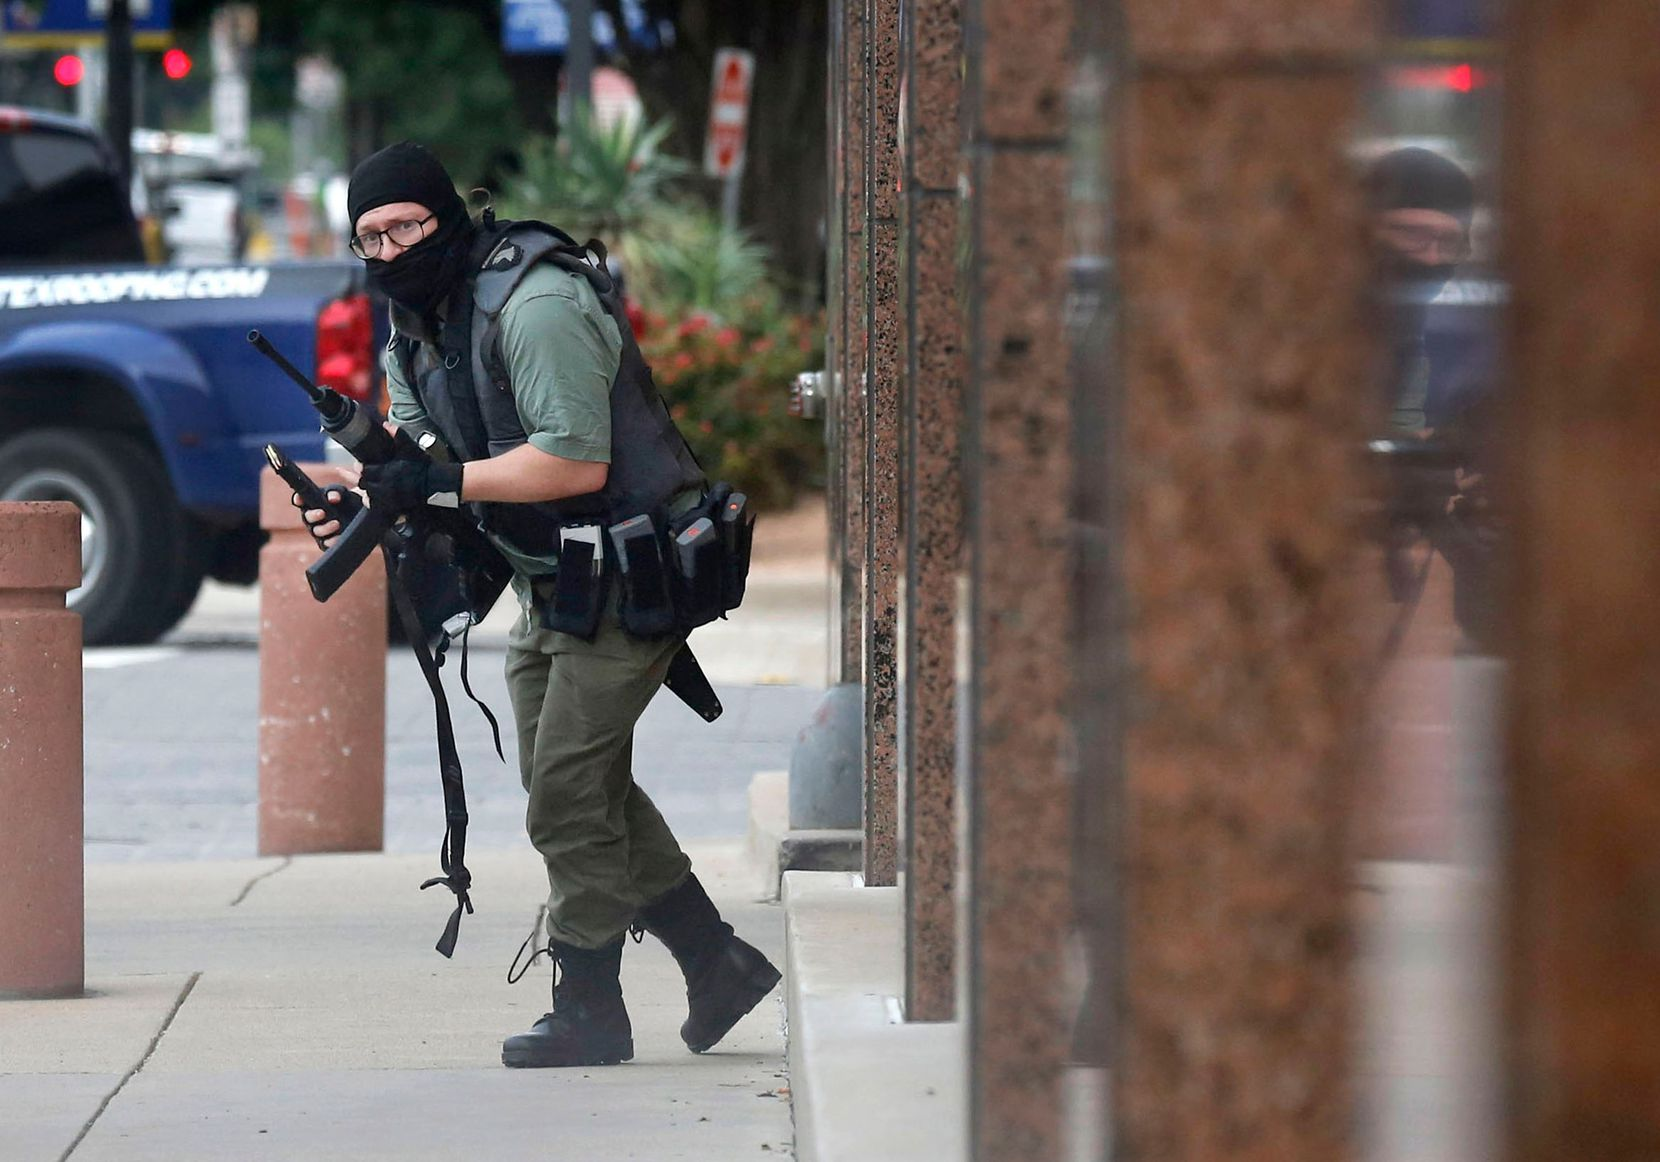 Armed with an AR-15 style rife, Brian Isaack Clyde attacked the Earle Cabell Federal Building on June 17, 2019, in downtown Dallas before law enforcement fatally shot him. No officers or citizens were wounded. (Tom Fox/Staff Photographer)